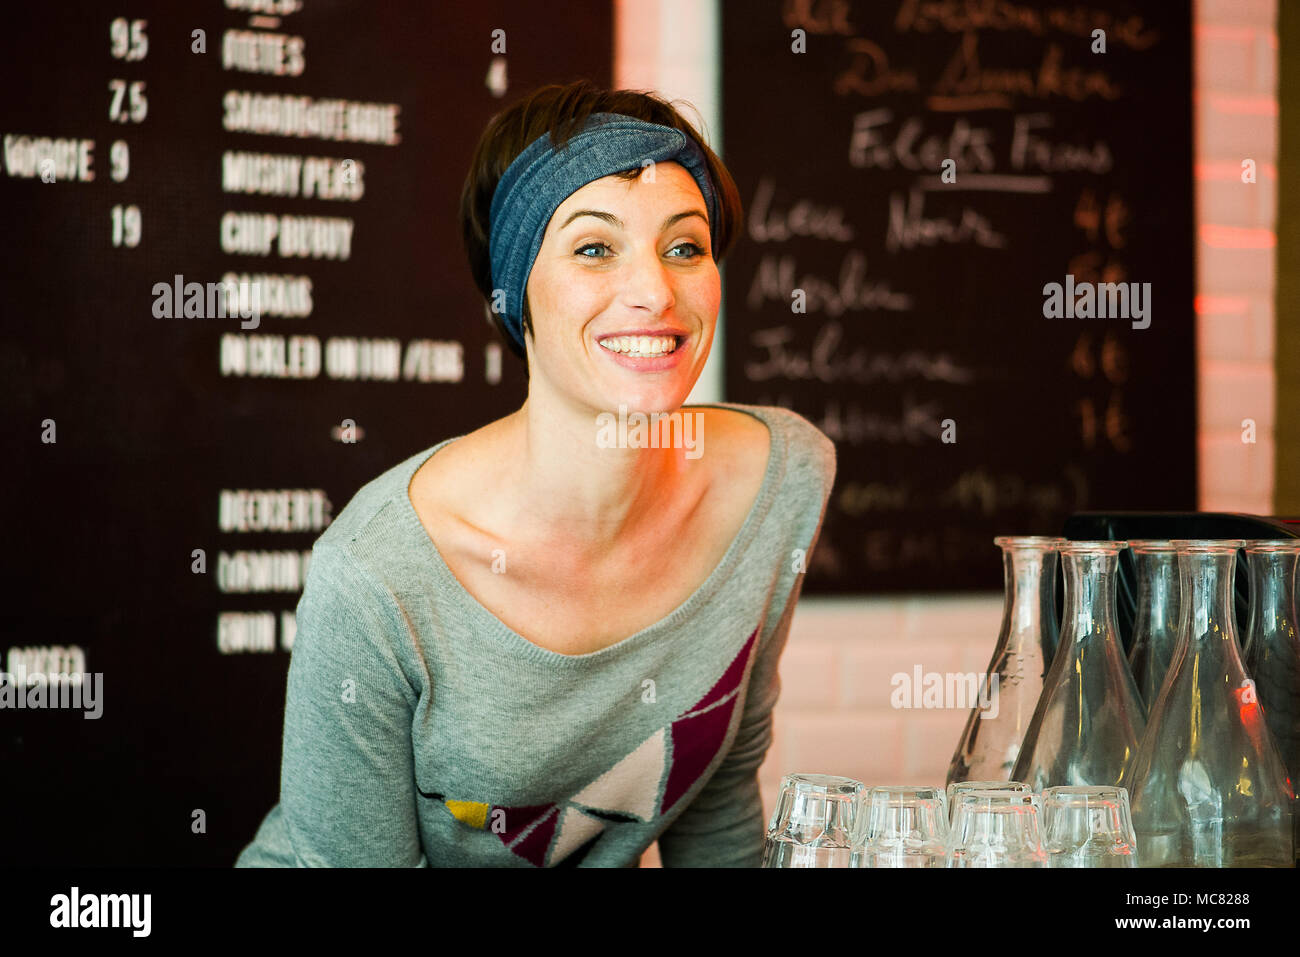 Woman smiling cheerfully in restaurant, portrait - Stock Image